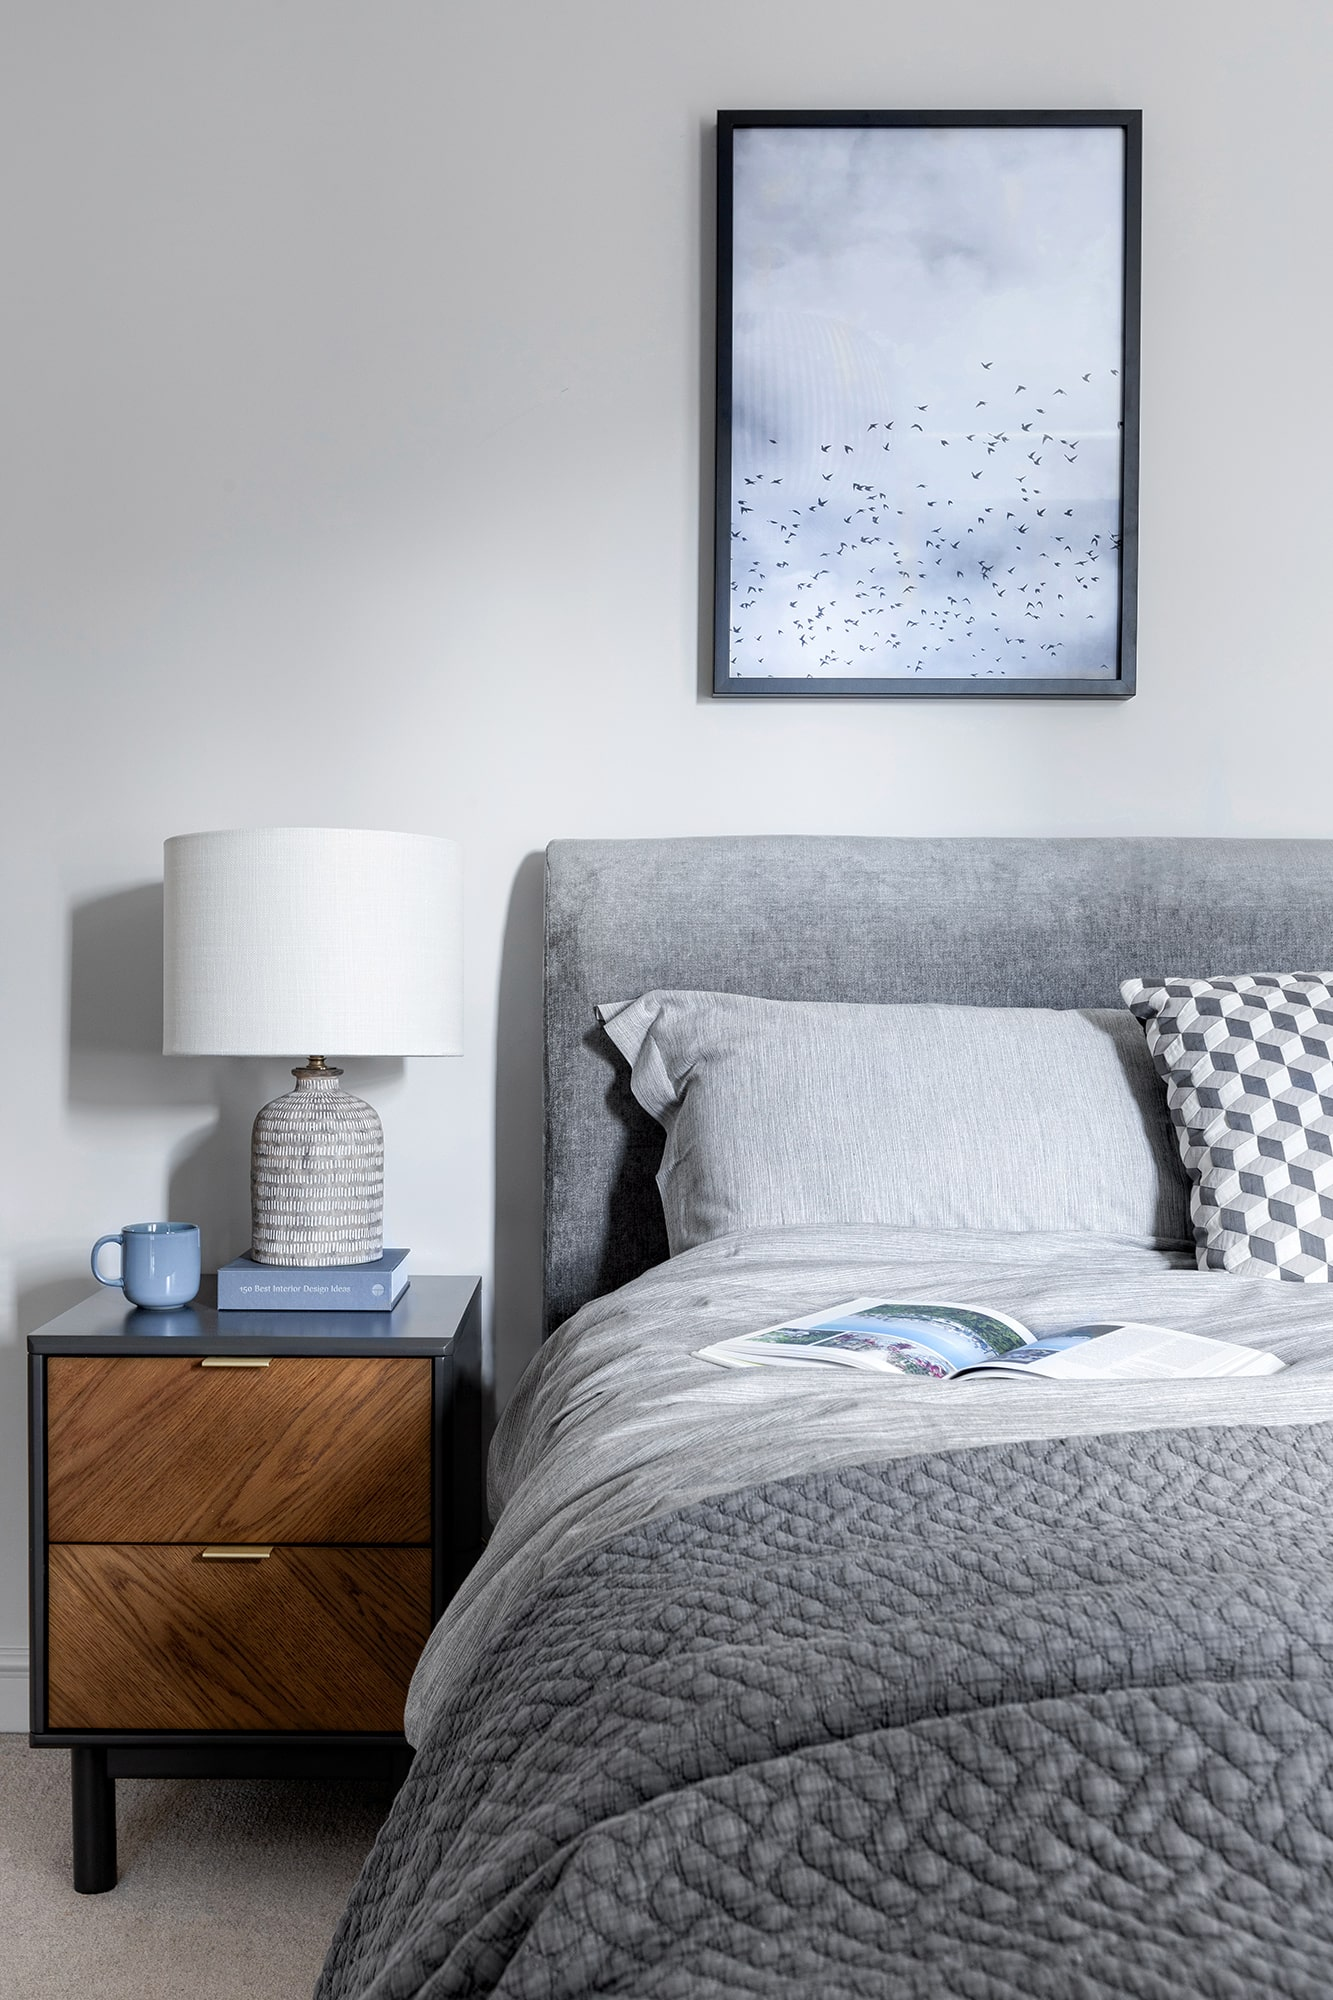 interior design of a bedroom: light grey walls; grey bed with grey bedding; brown wooden bedside table; white lamp; blue poster with small birds